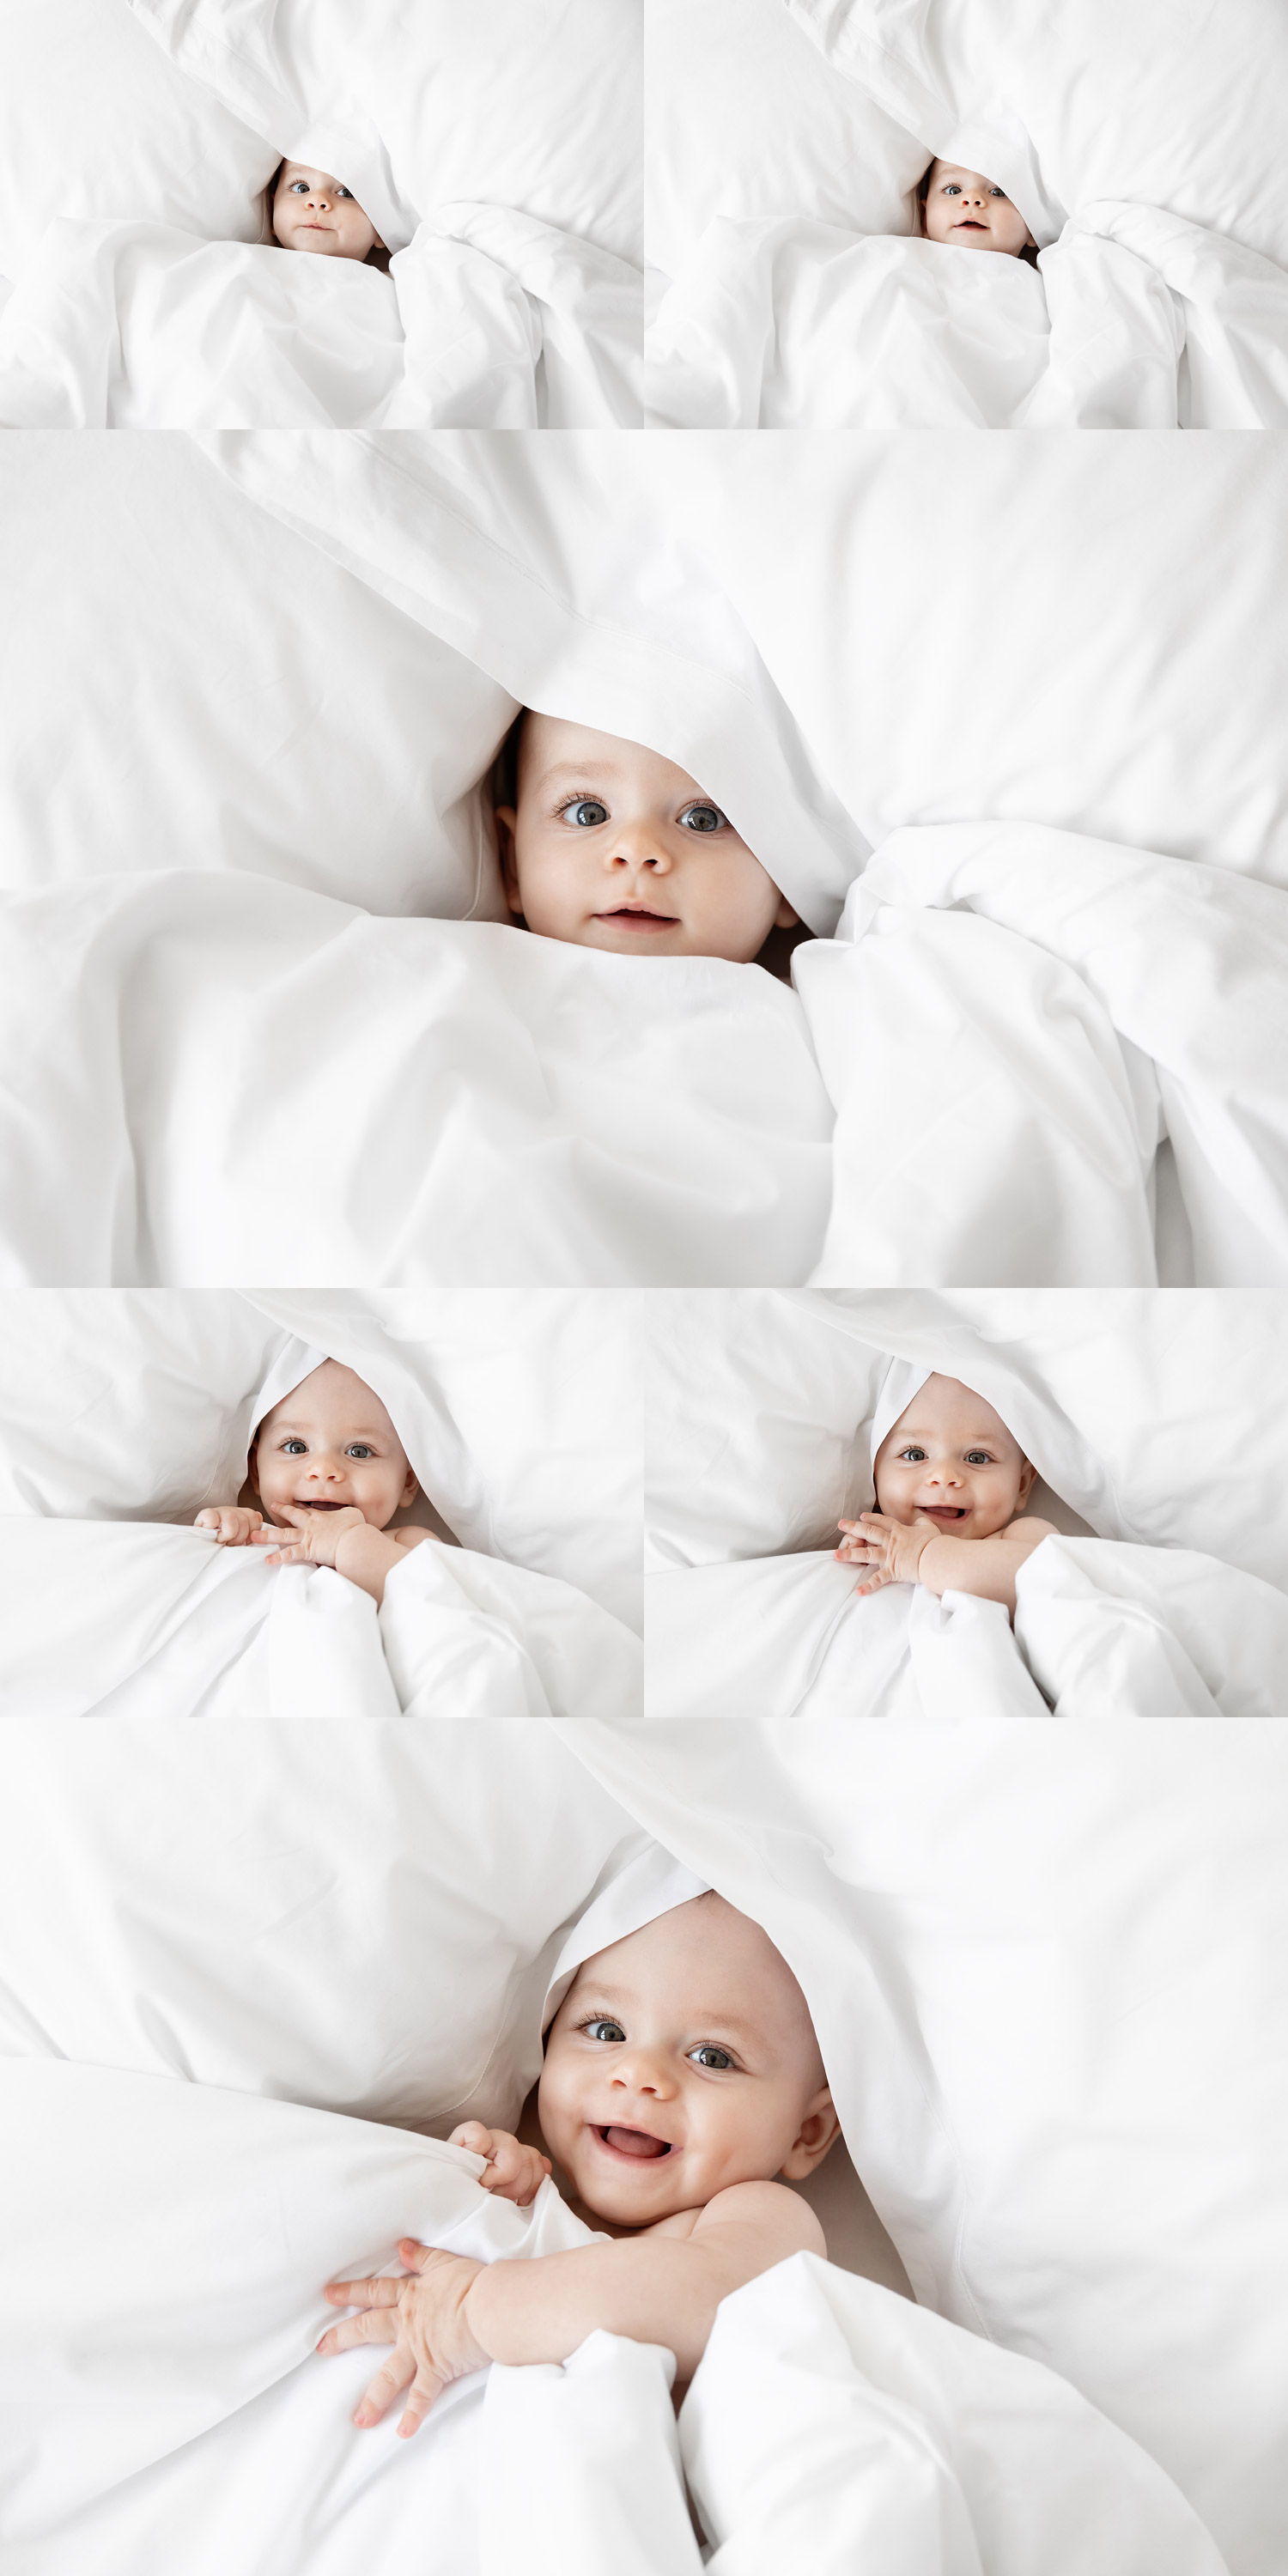 Cute baby peeking in white bedsheets by commercial baby photographer Lisa Tichane